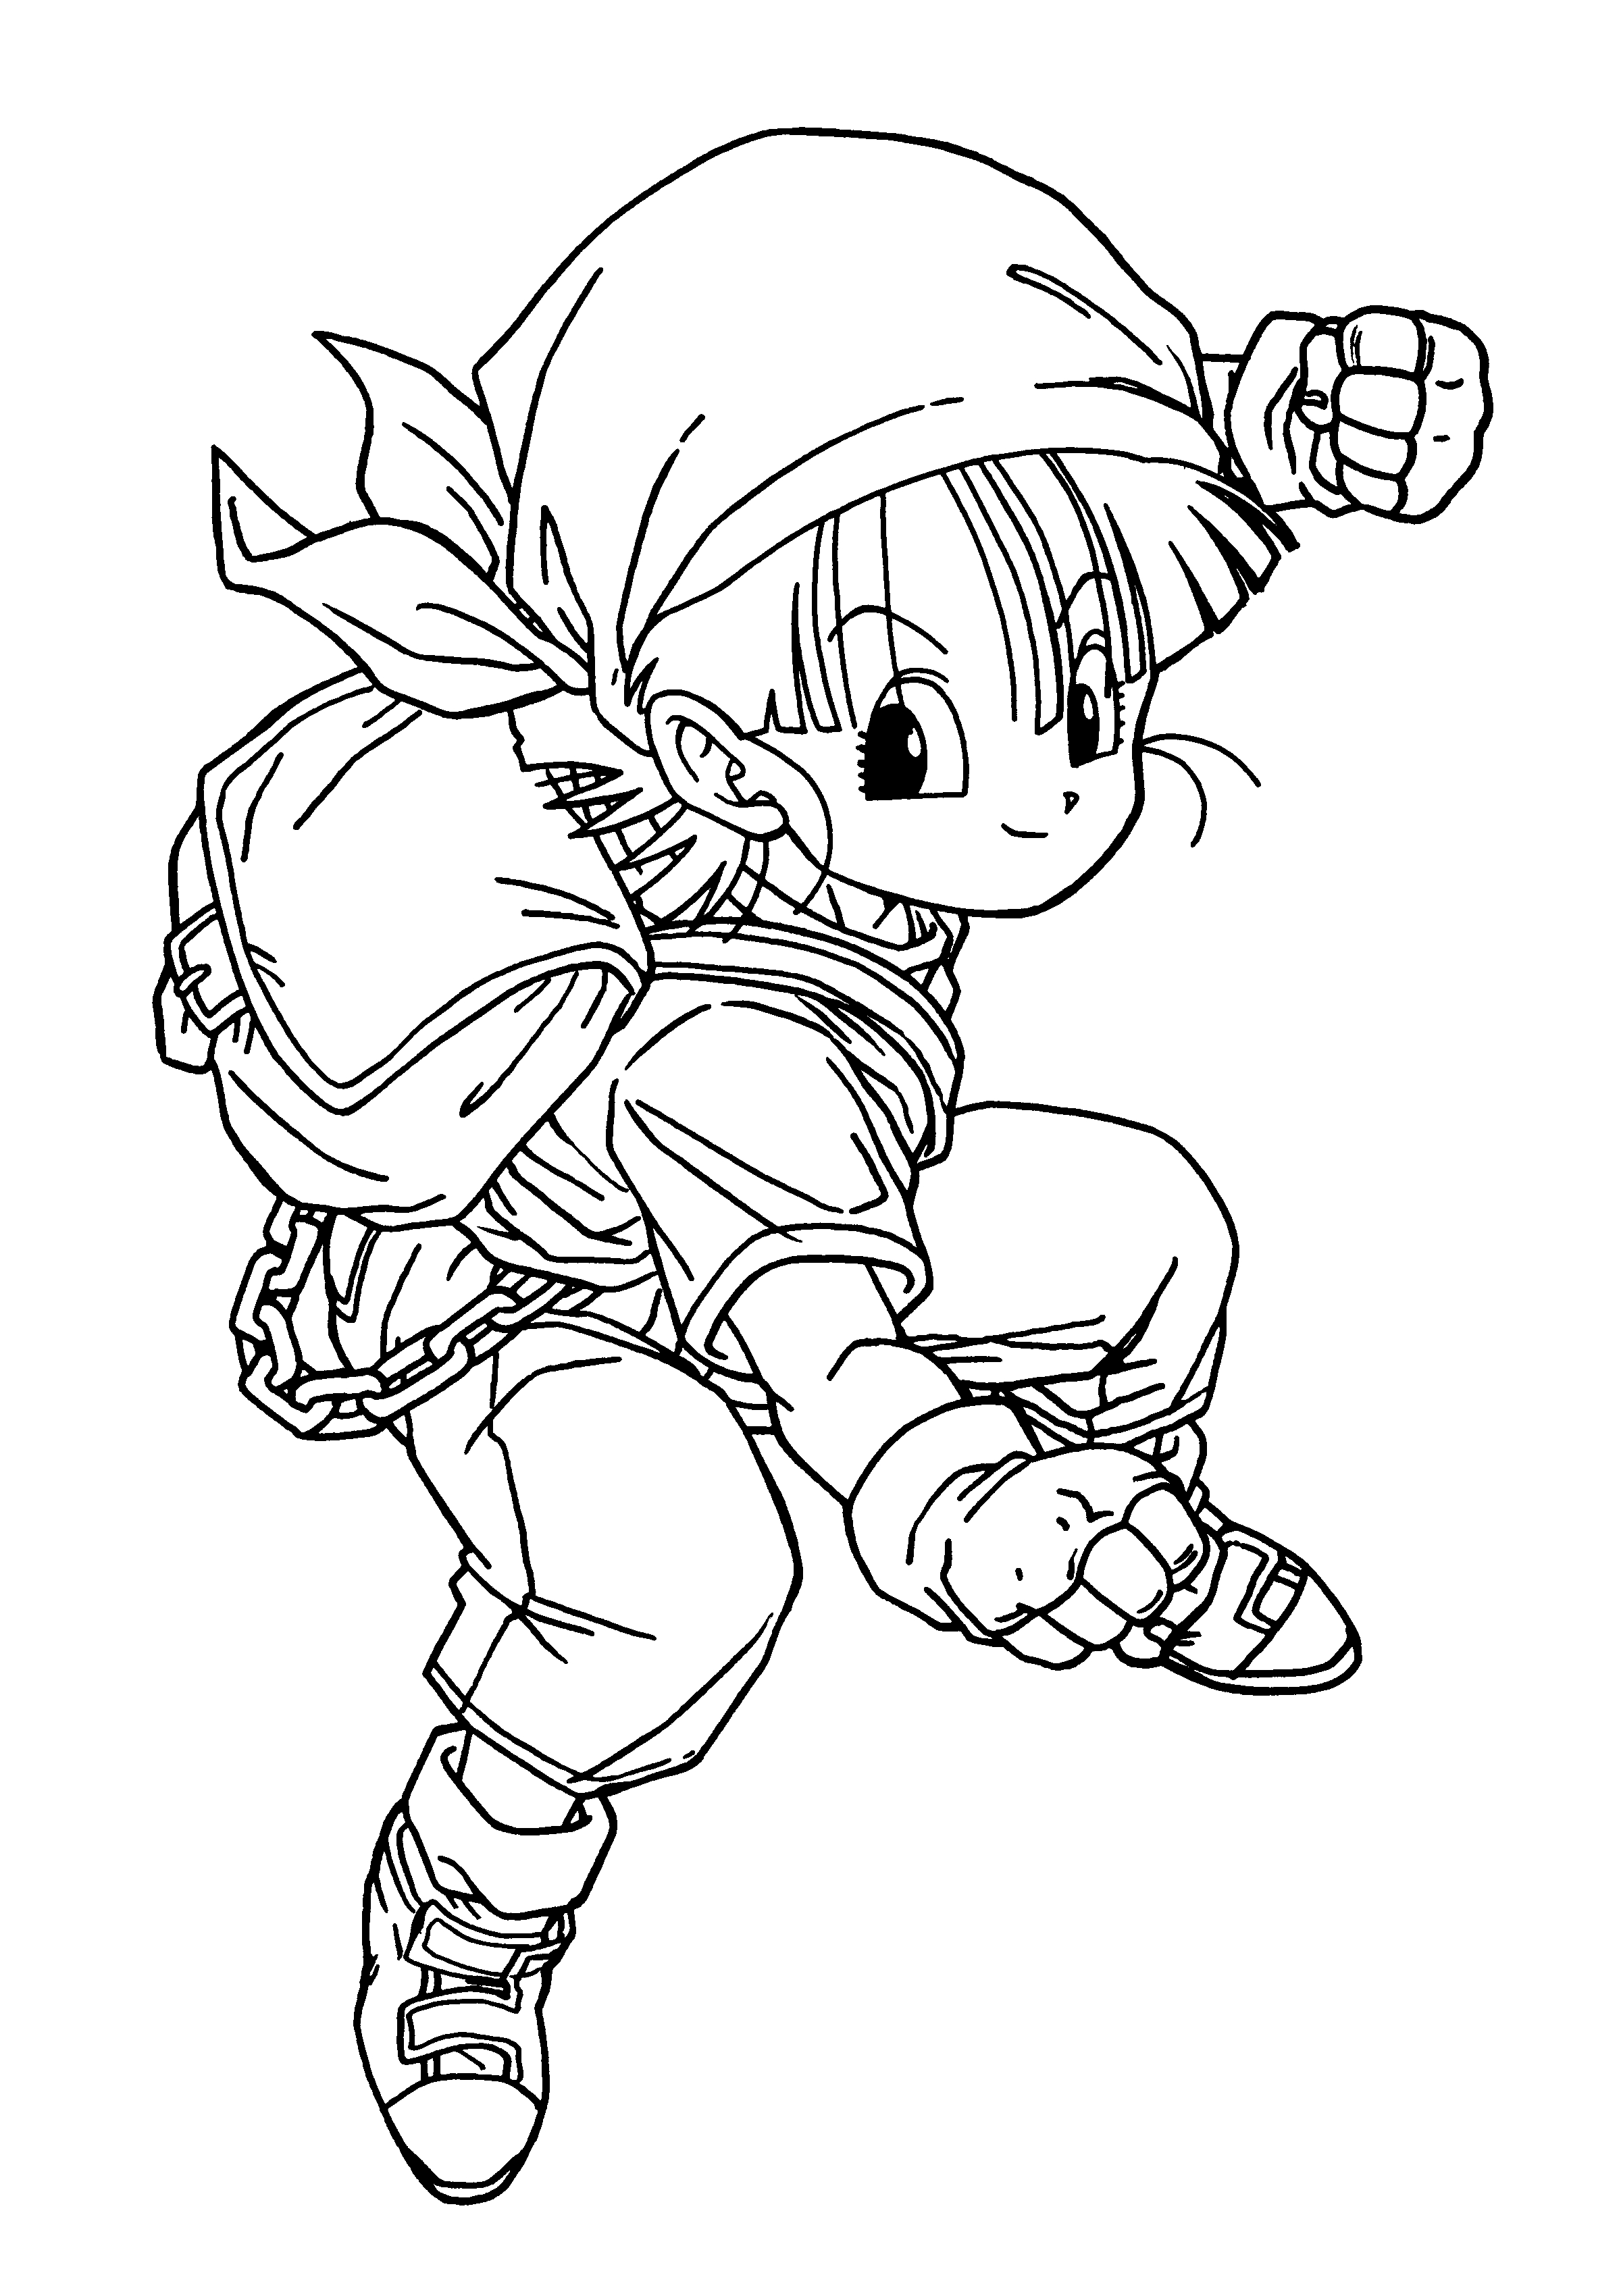 20 Dbz Coloring Pages Compilation | FREE COLORING PAGES - Part 3